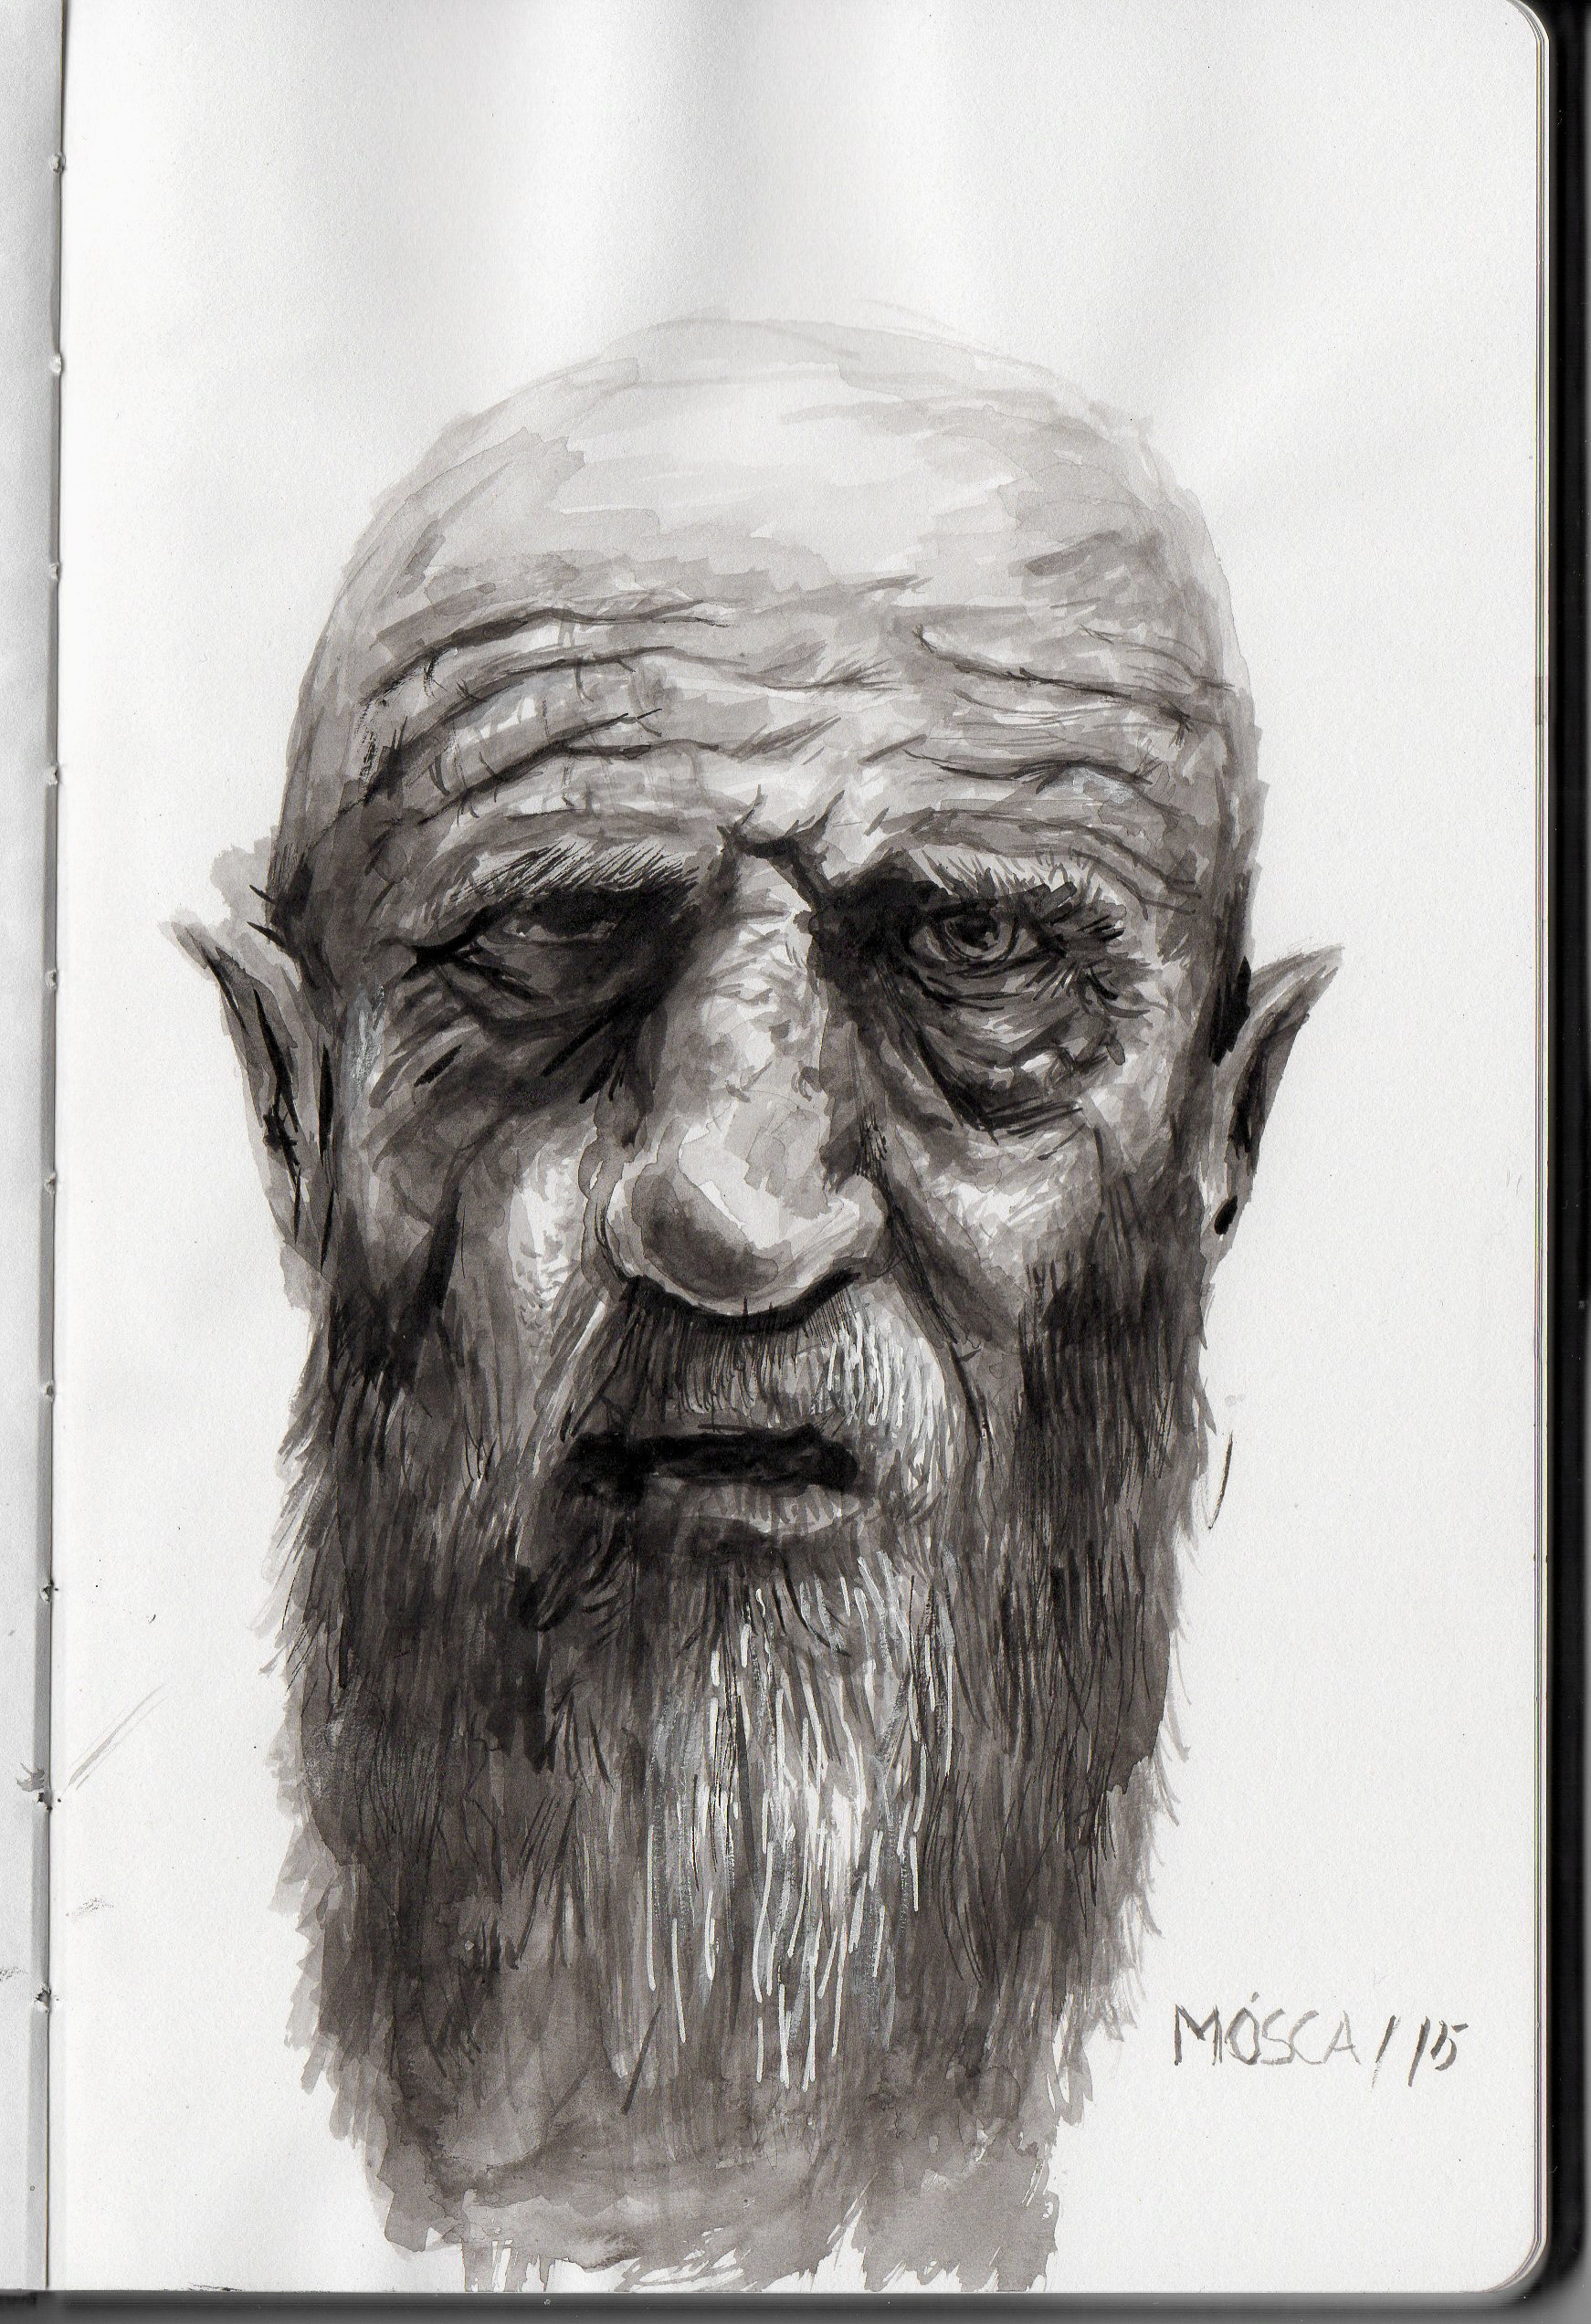 Artur mosca old man